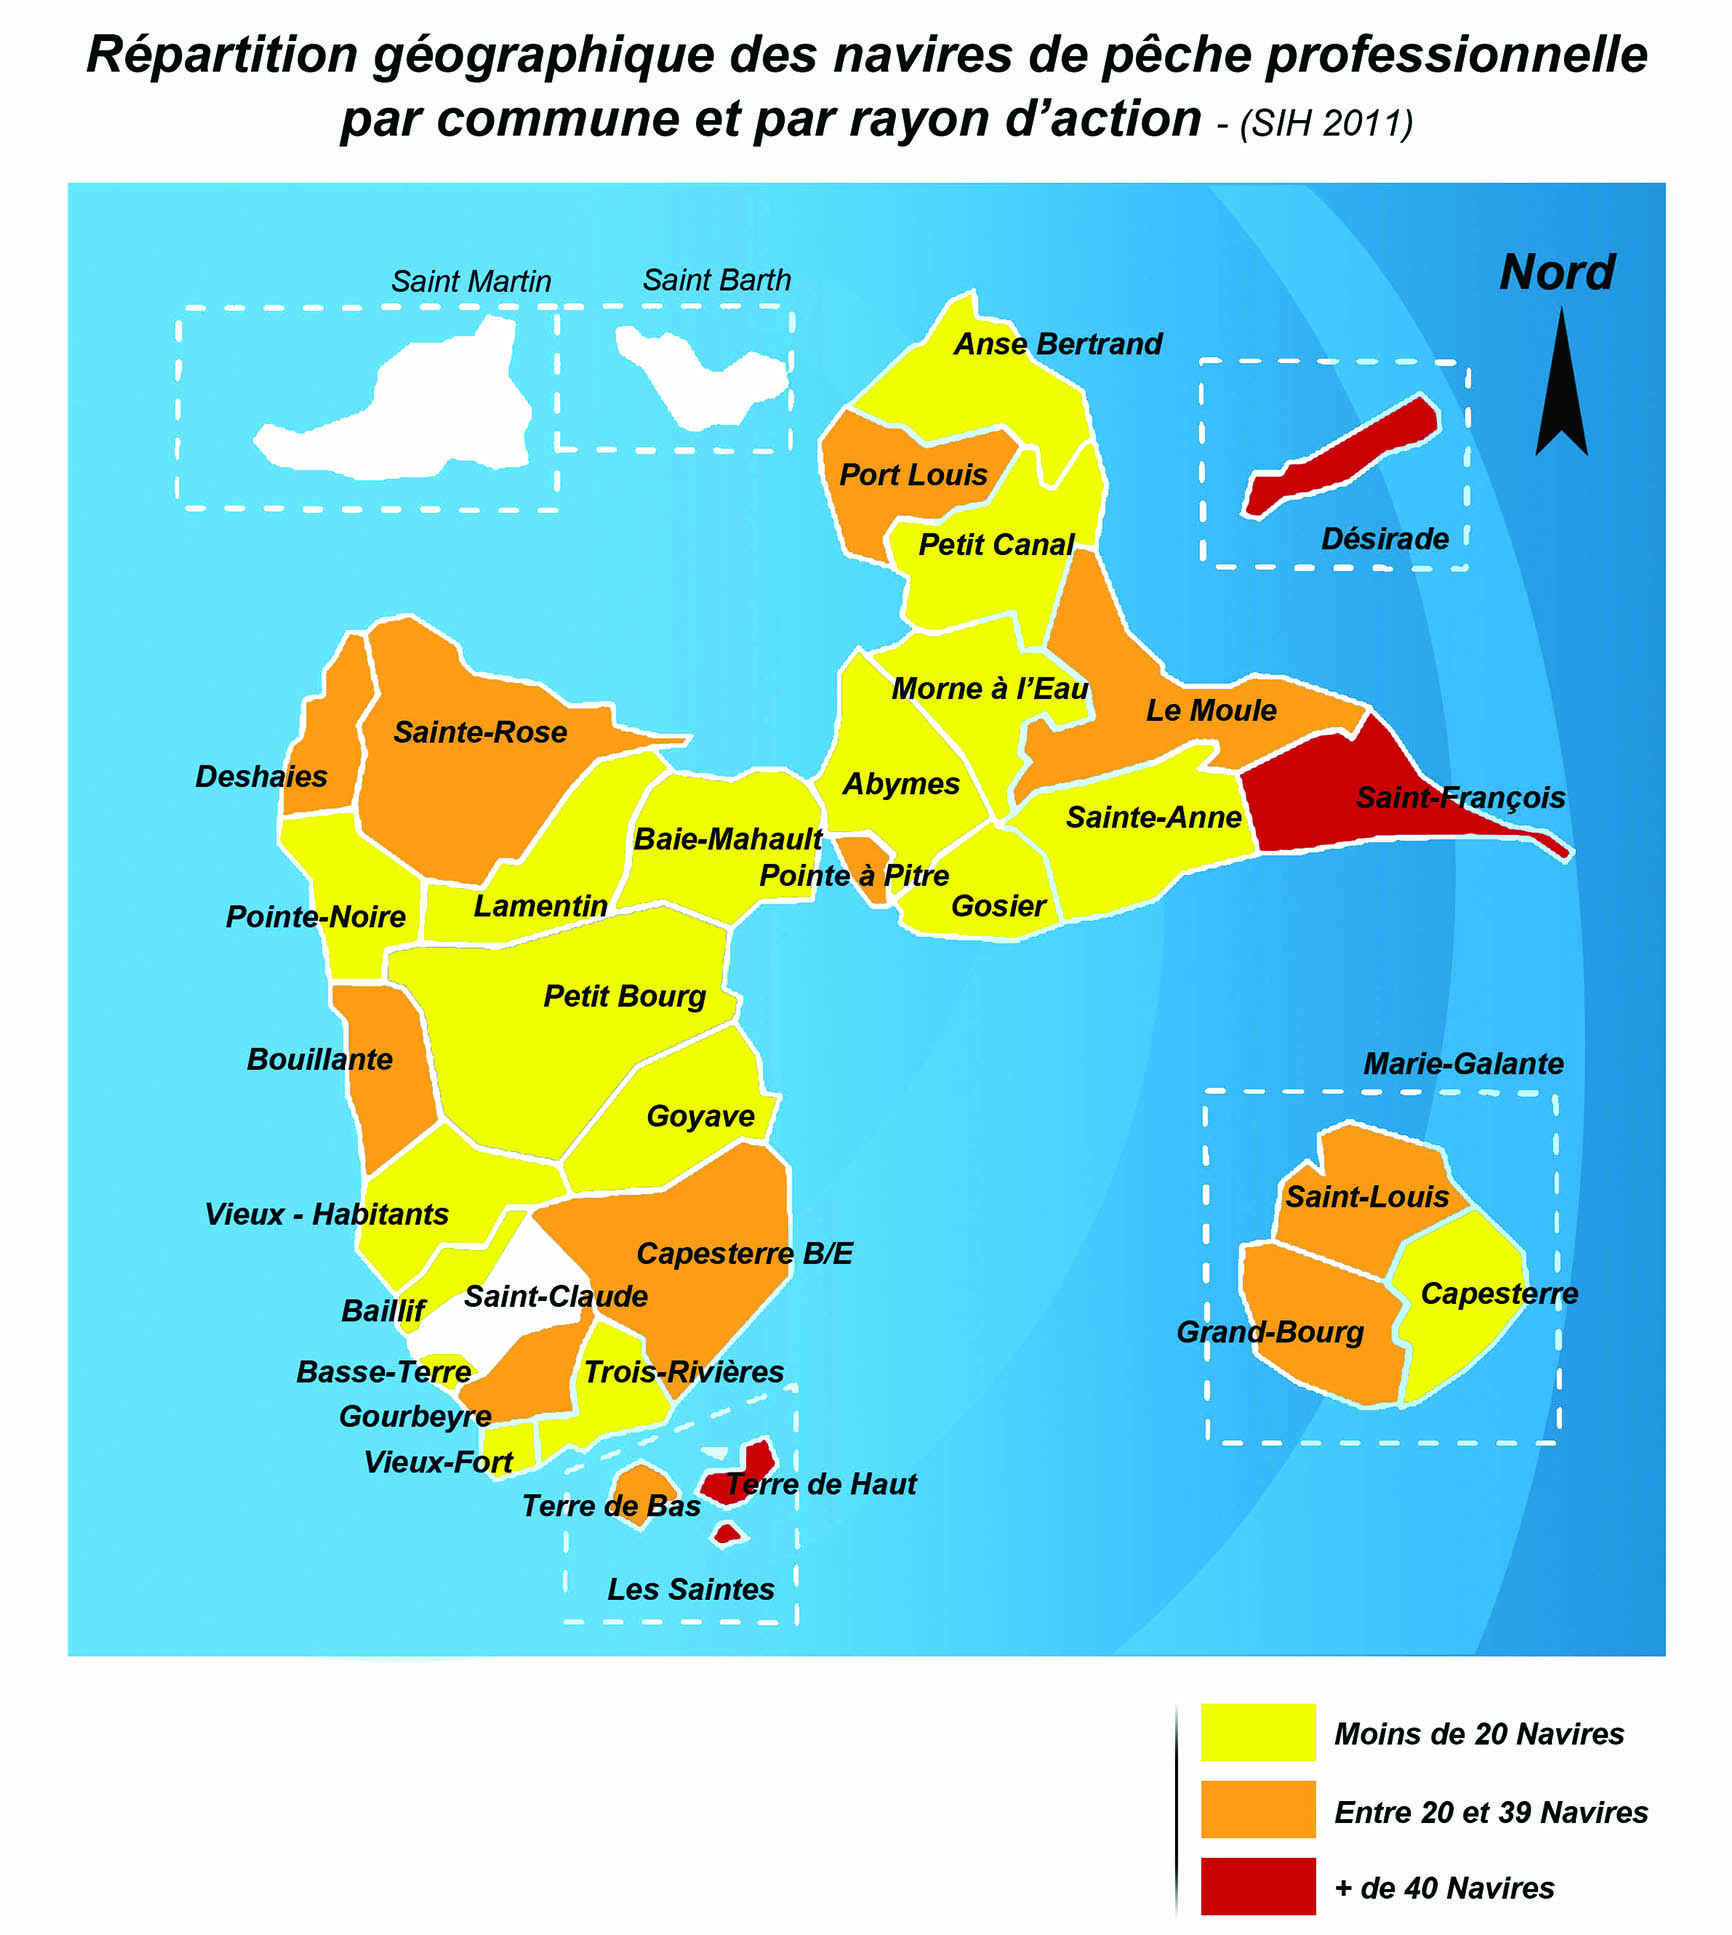 CARTE REPARTITION GEOGRAPHIQUE NAVIRES